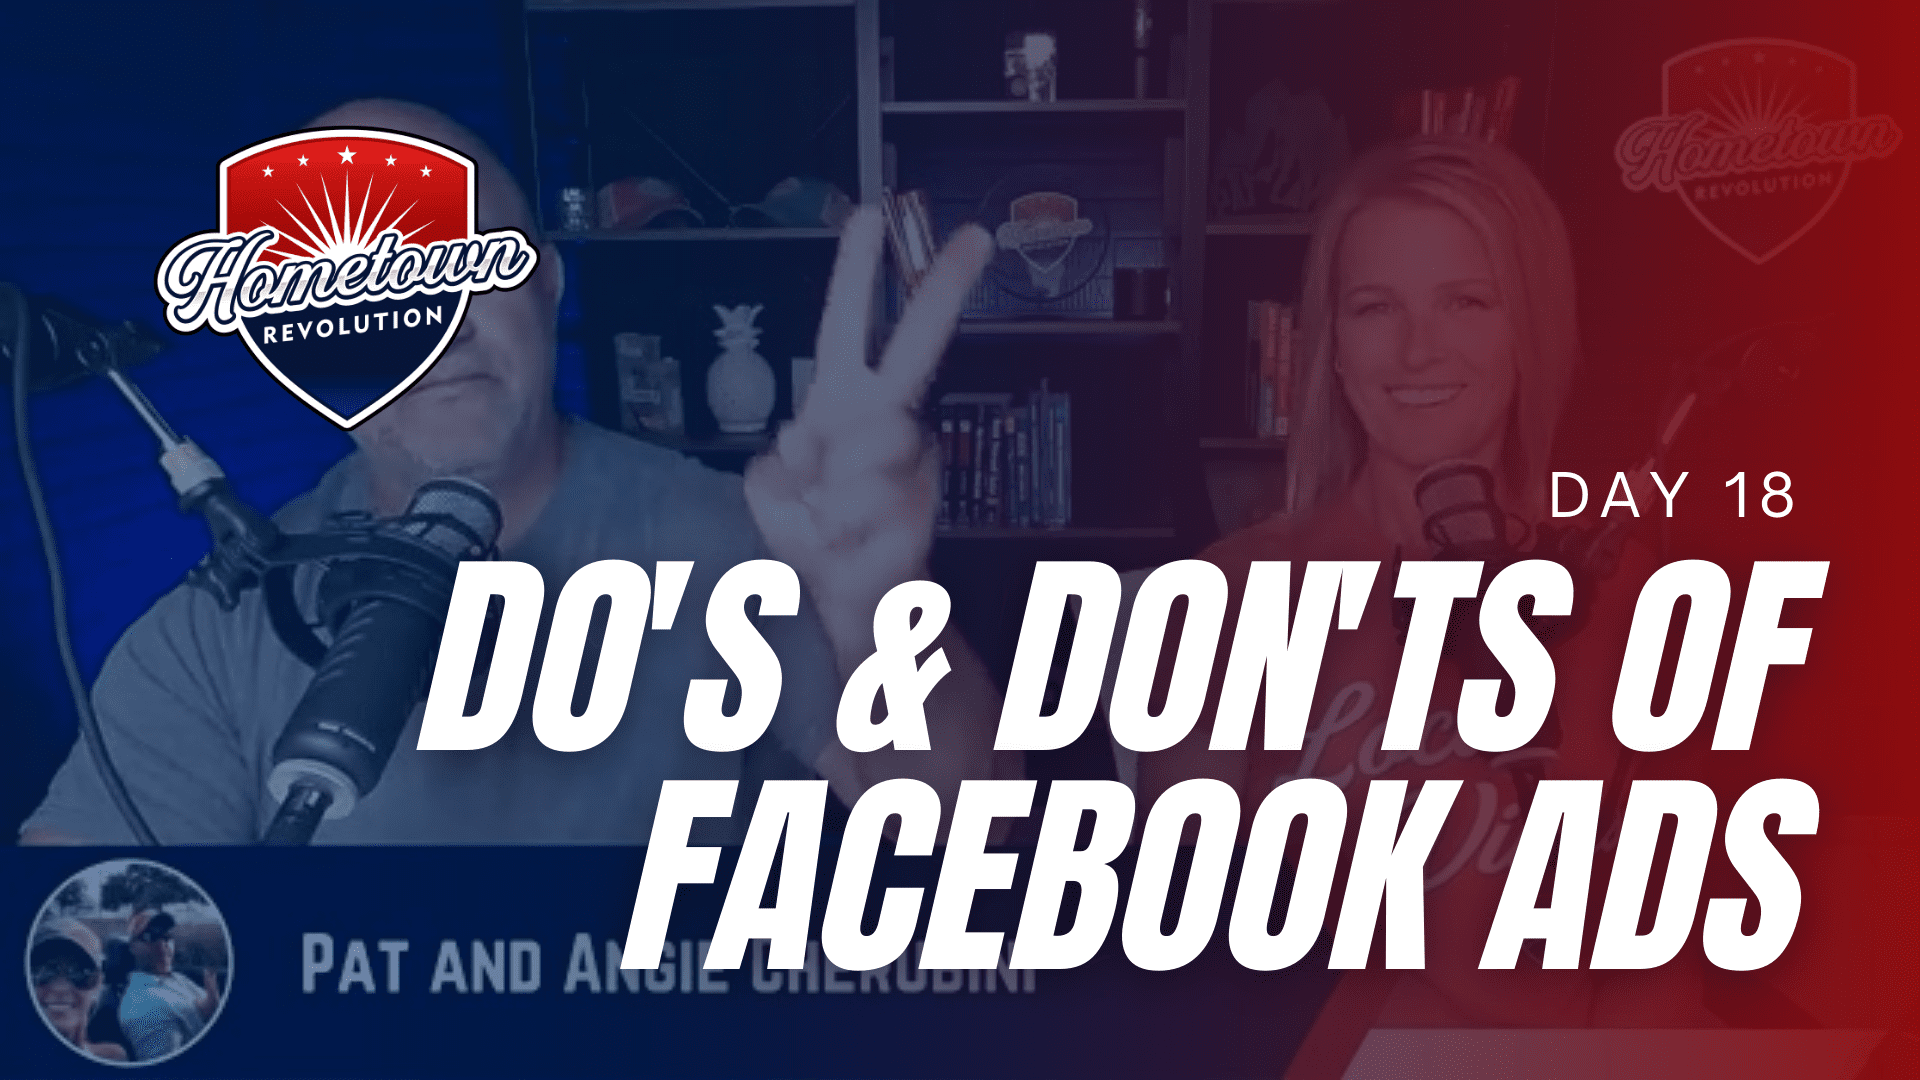 do's & Don'ts of Facebook ads